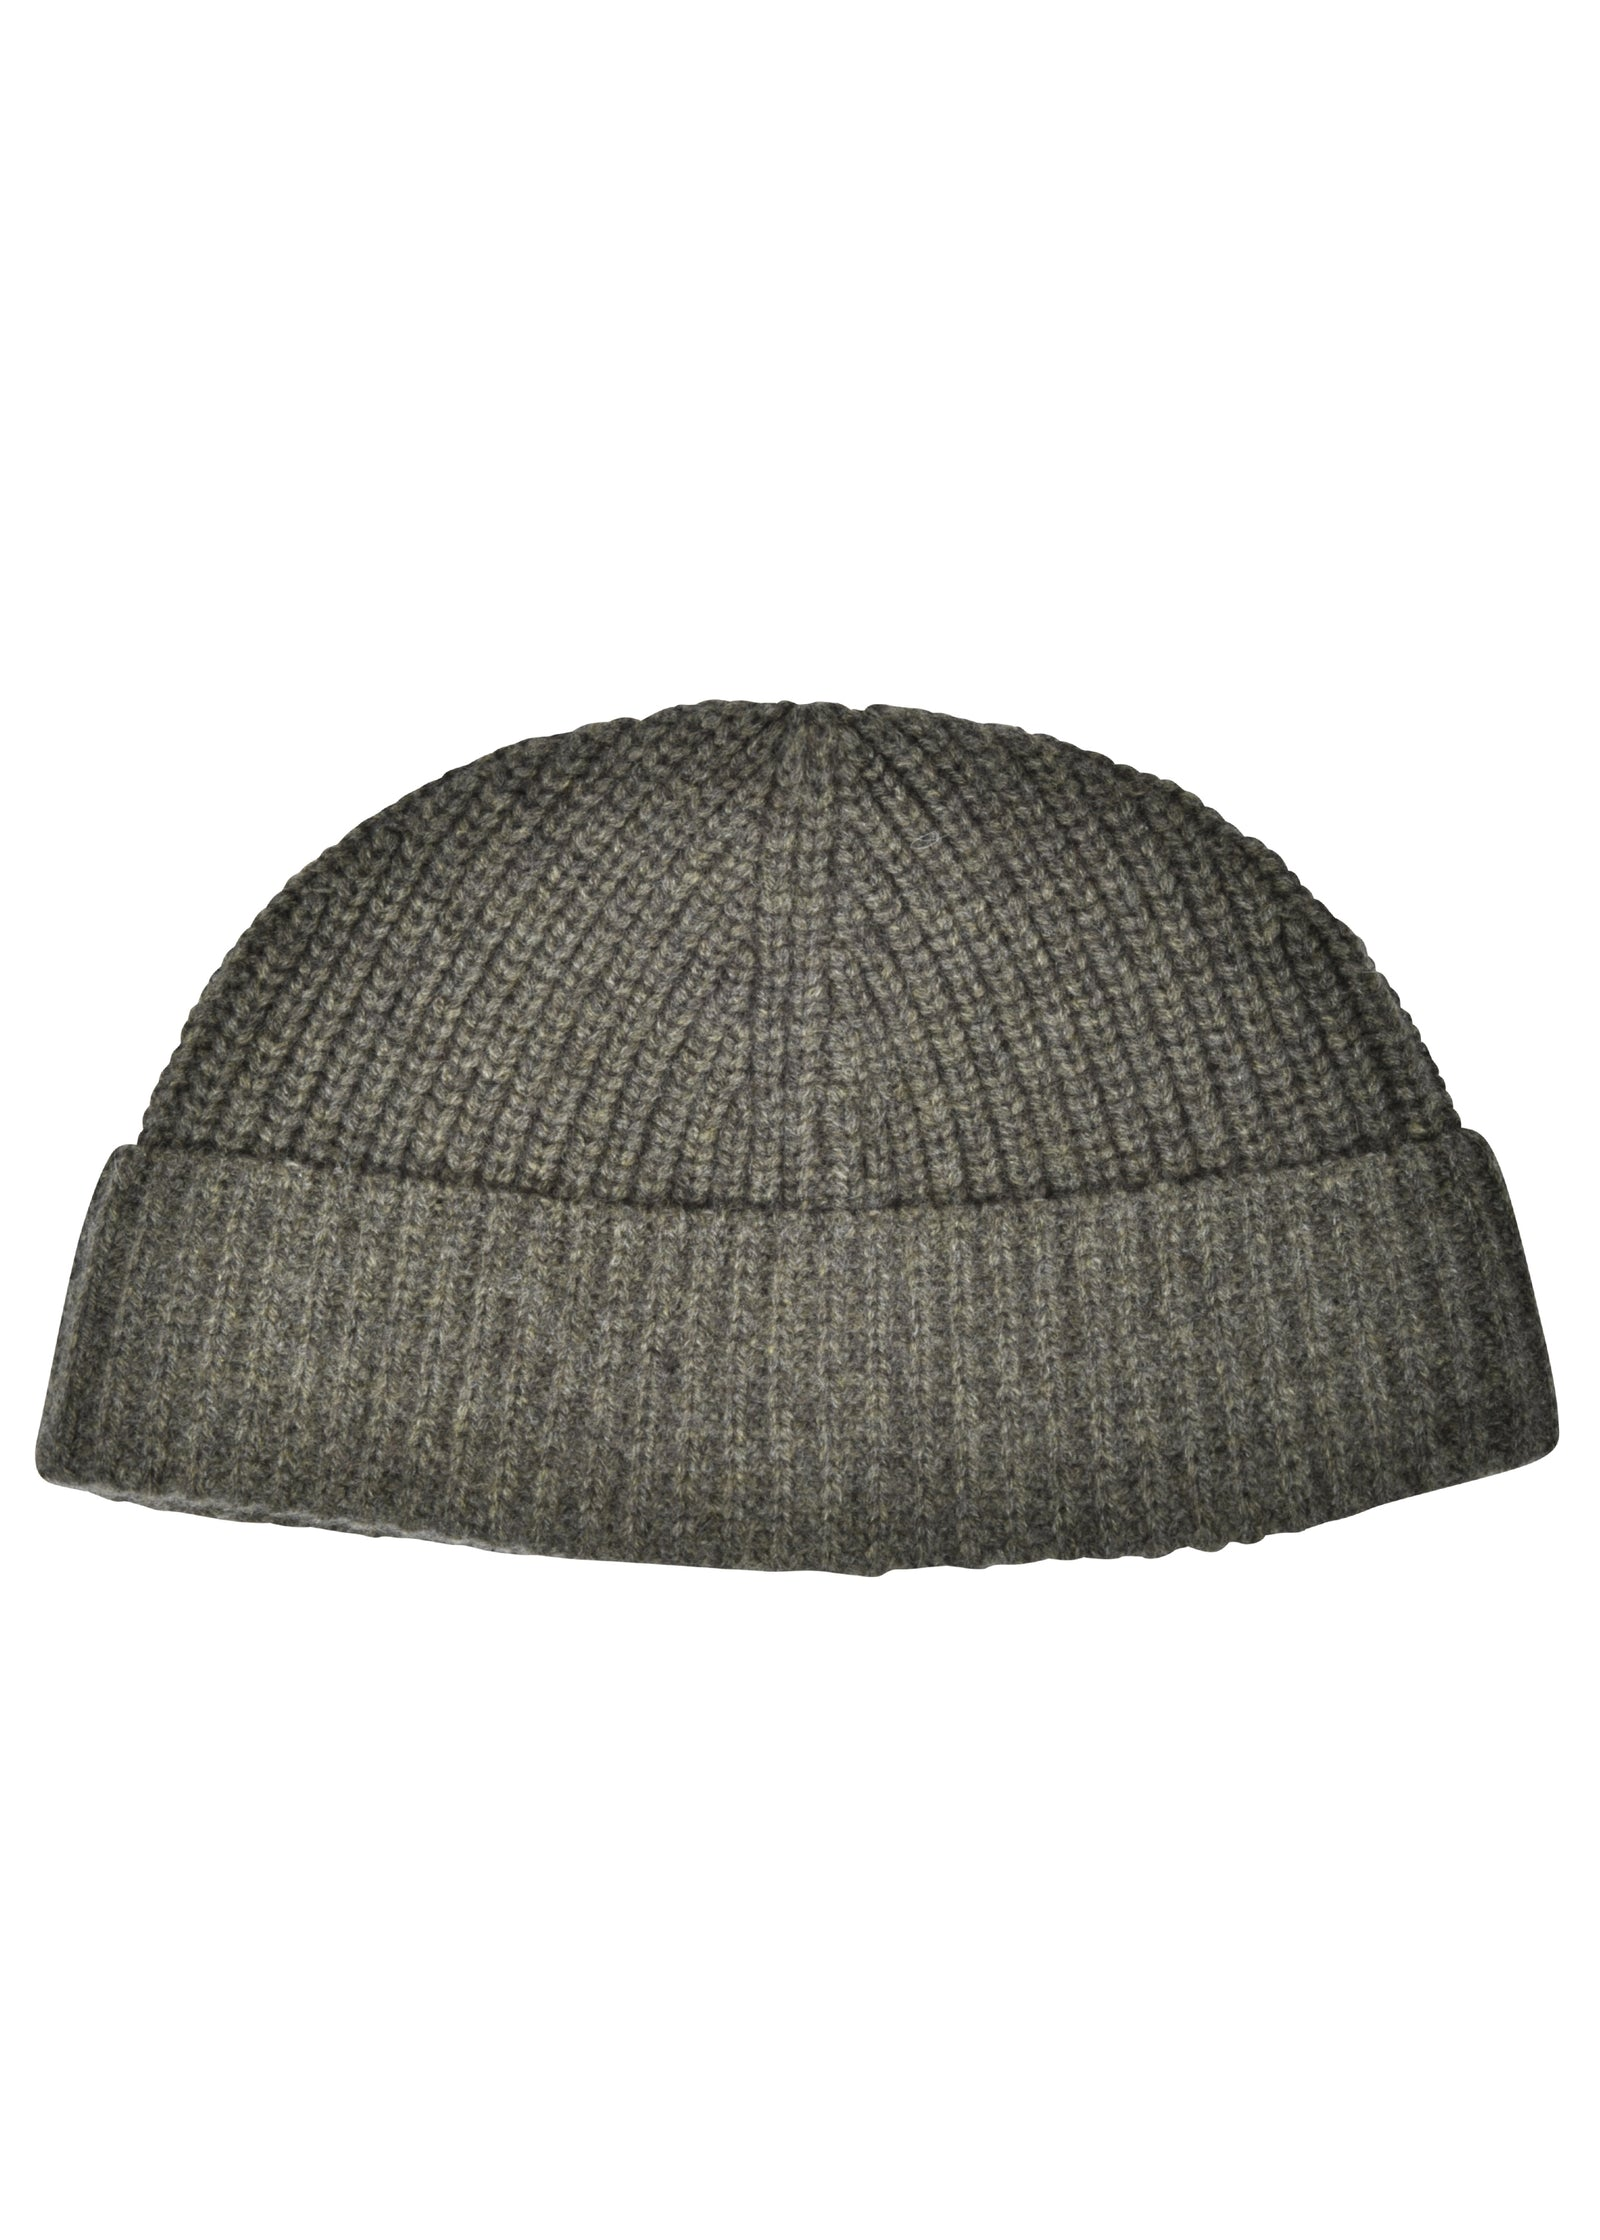 Cashmere Cap in Army